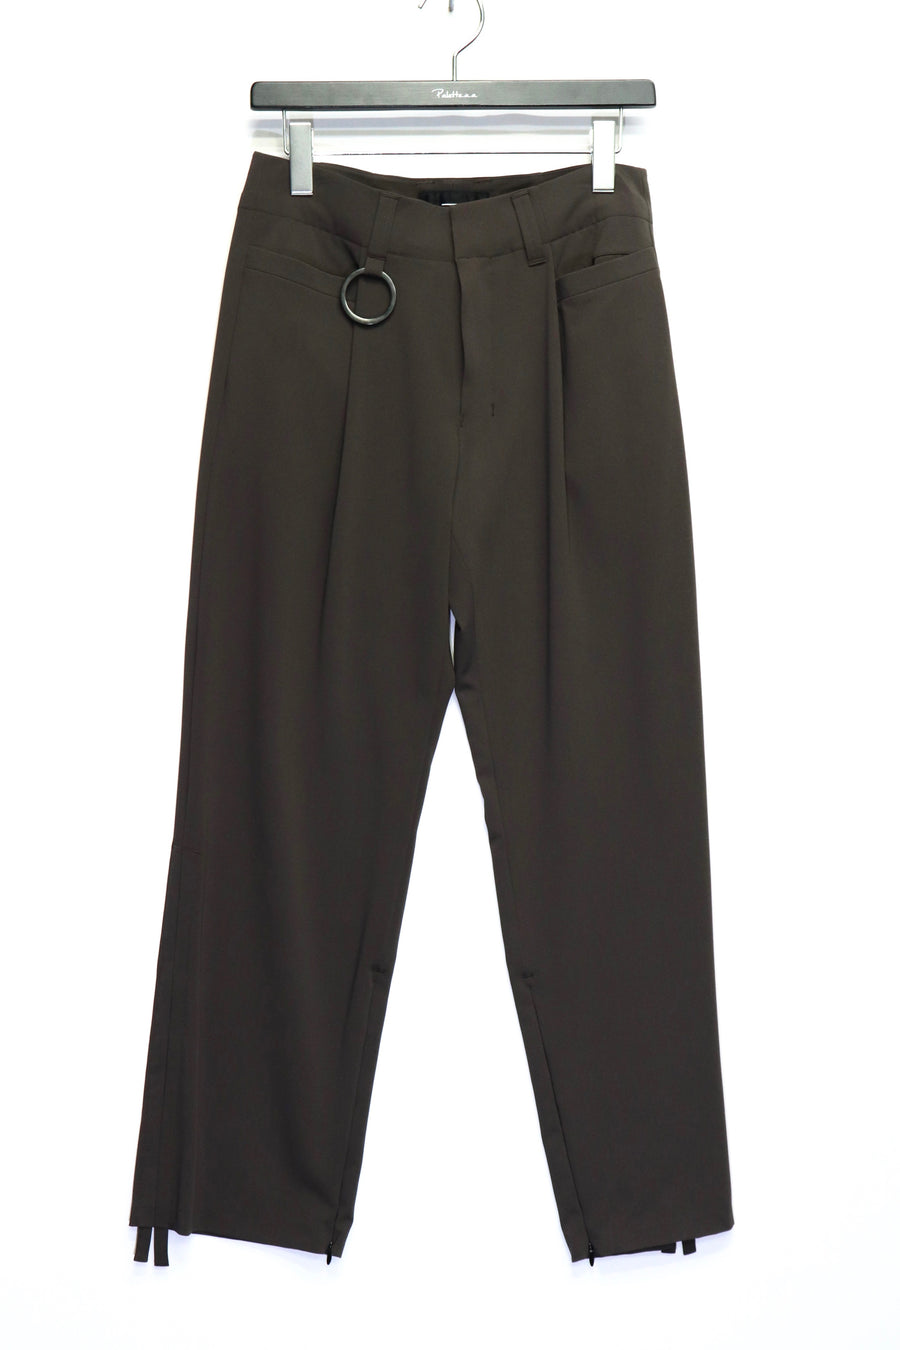 【30%OFF】[ー]MINUS  ADJUSTER TROUSERS(DARK)